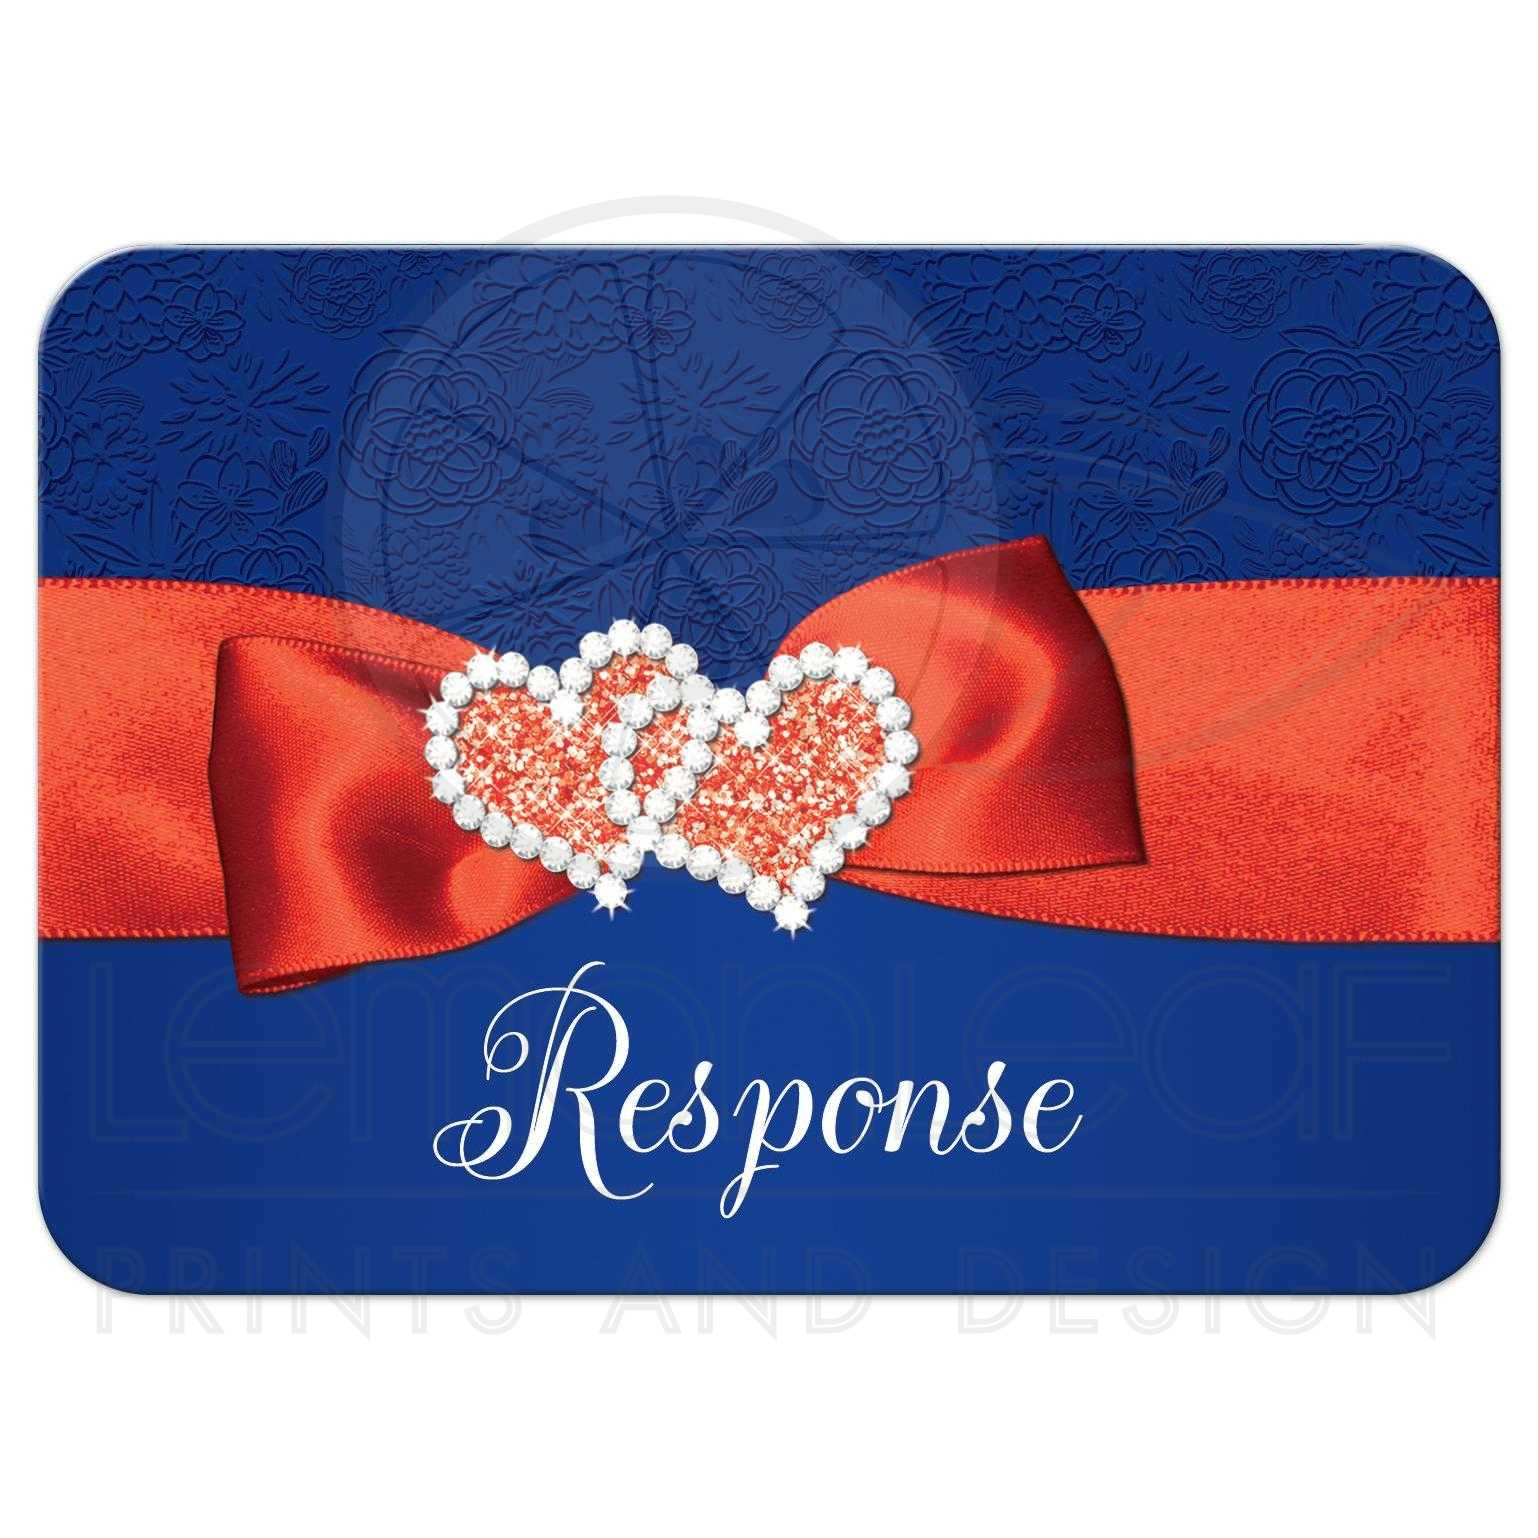 Wedding RSVP Card 2  Royal Blue Orange White Floral